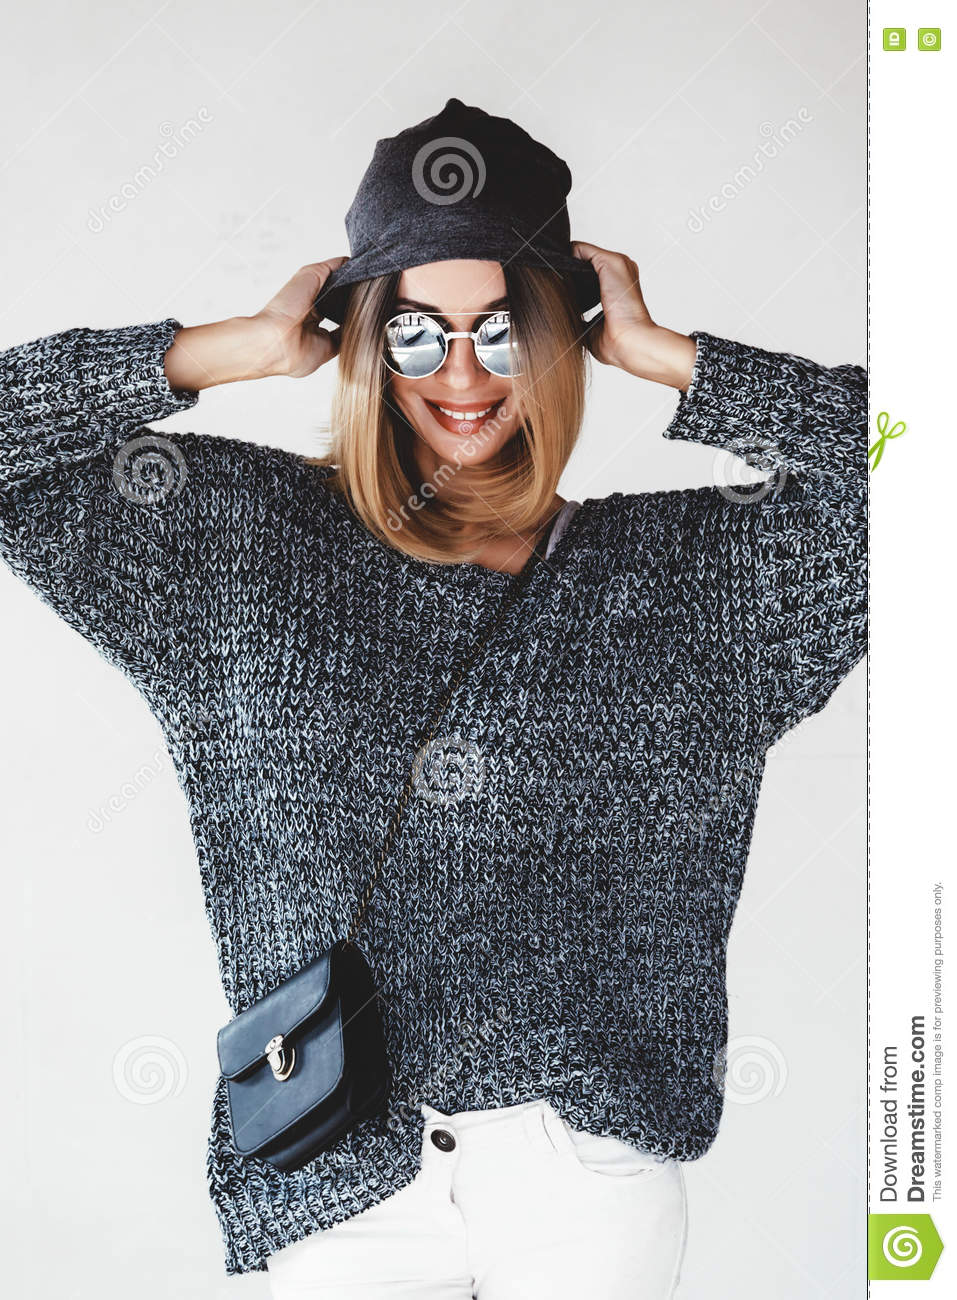 Trendy hipster girl photo in fashion urban outfit. Grey oversize sweater,  hat and sunglasses. Swag street style. Instagram photo.